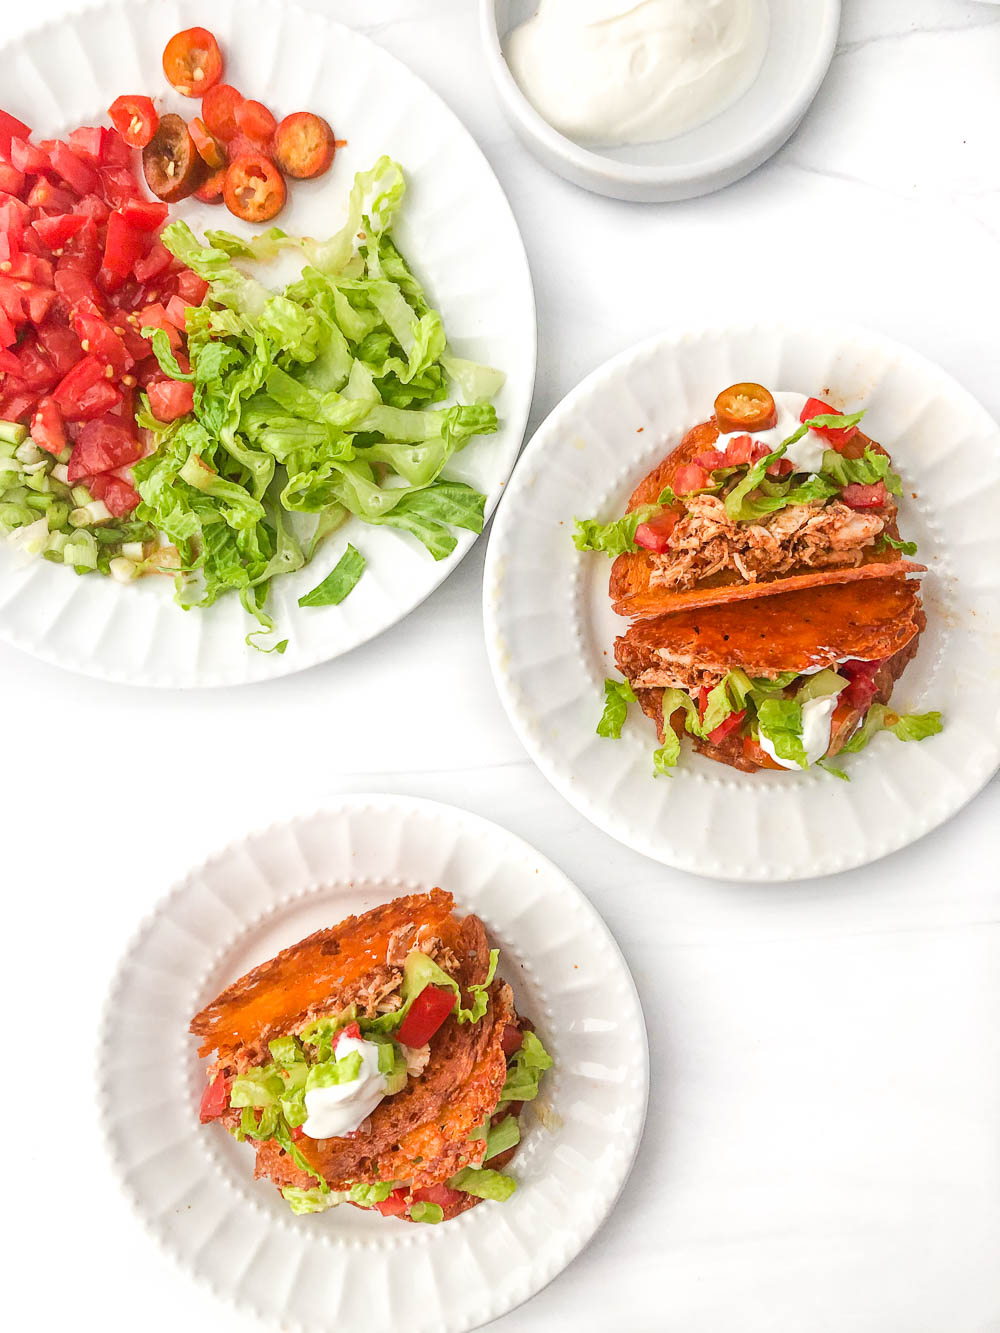 aerial view of 2 white plates with low carb mini tacos and a plate with taco toppings